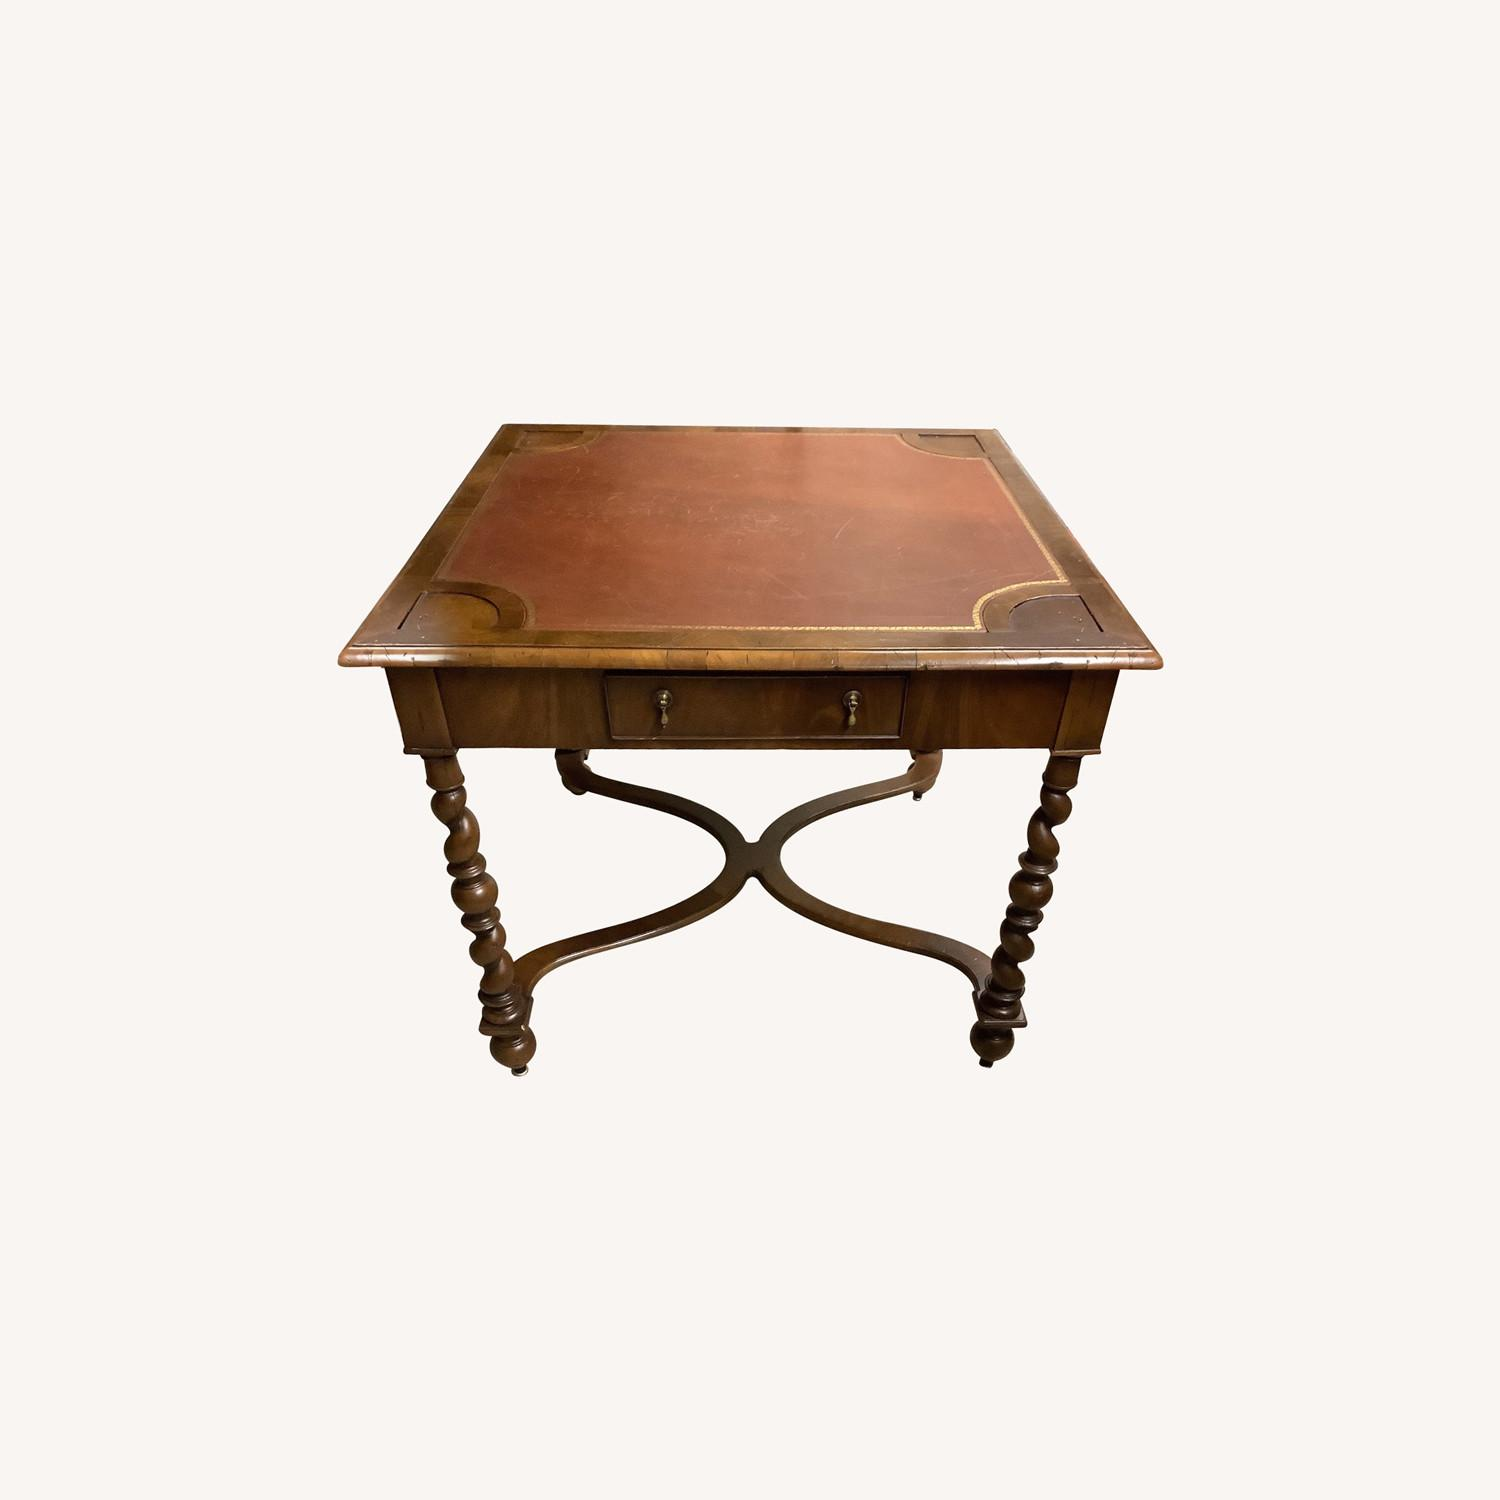 Square Game Table Leather Top and Wood Legs - image-0